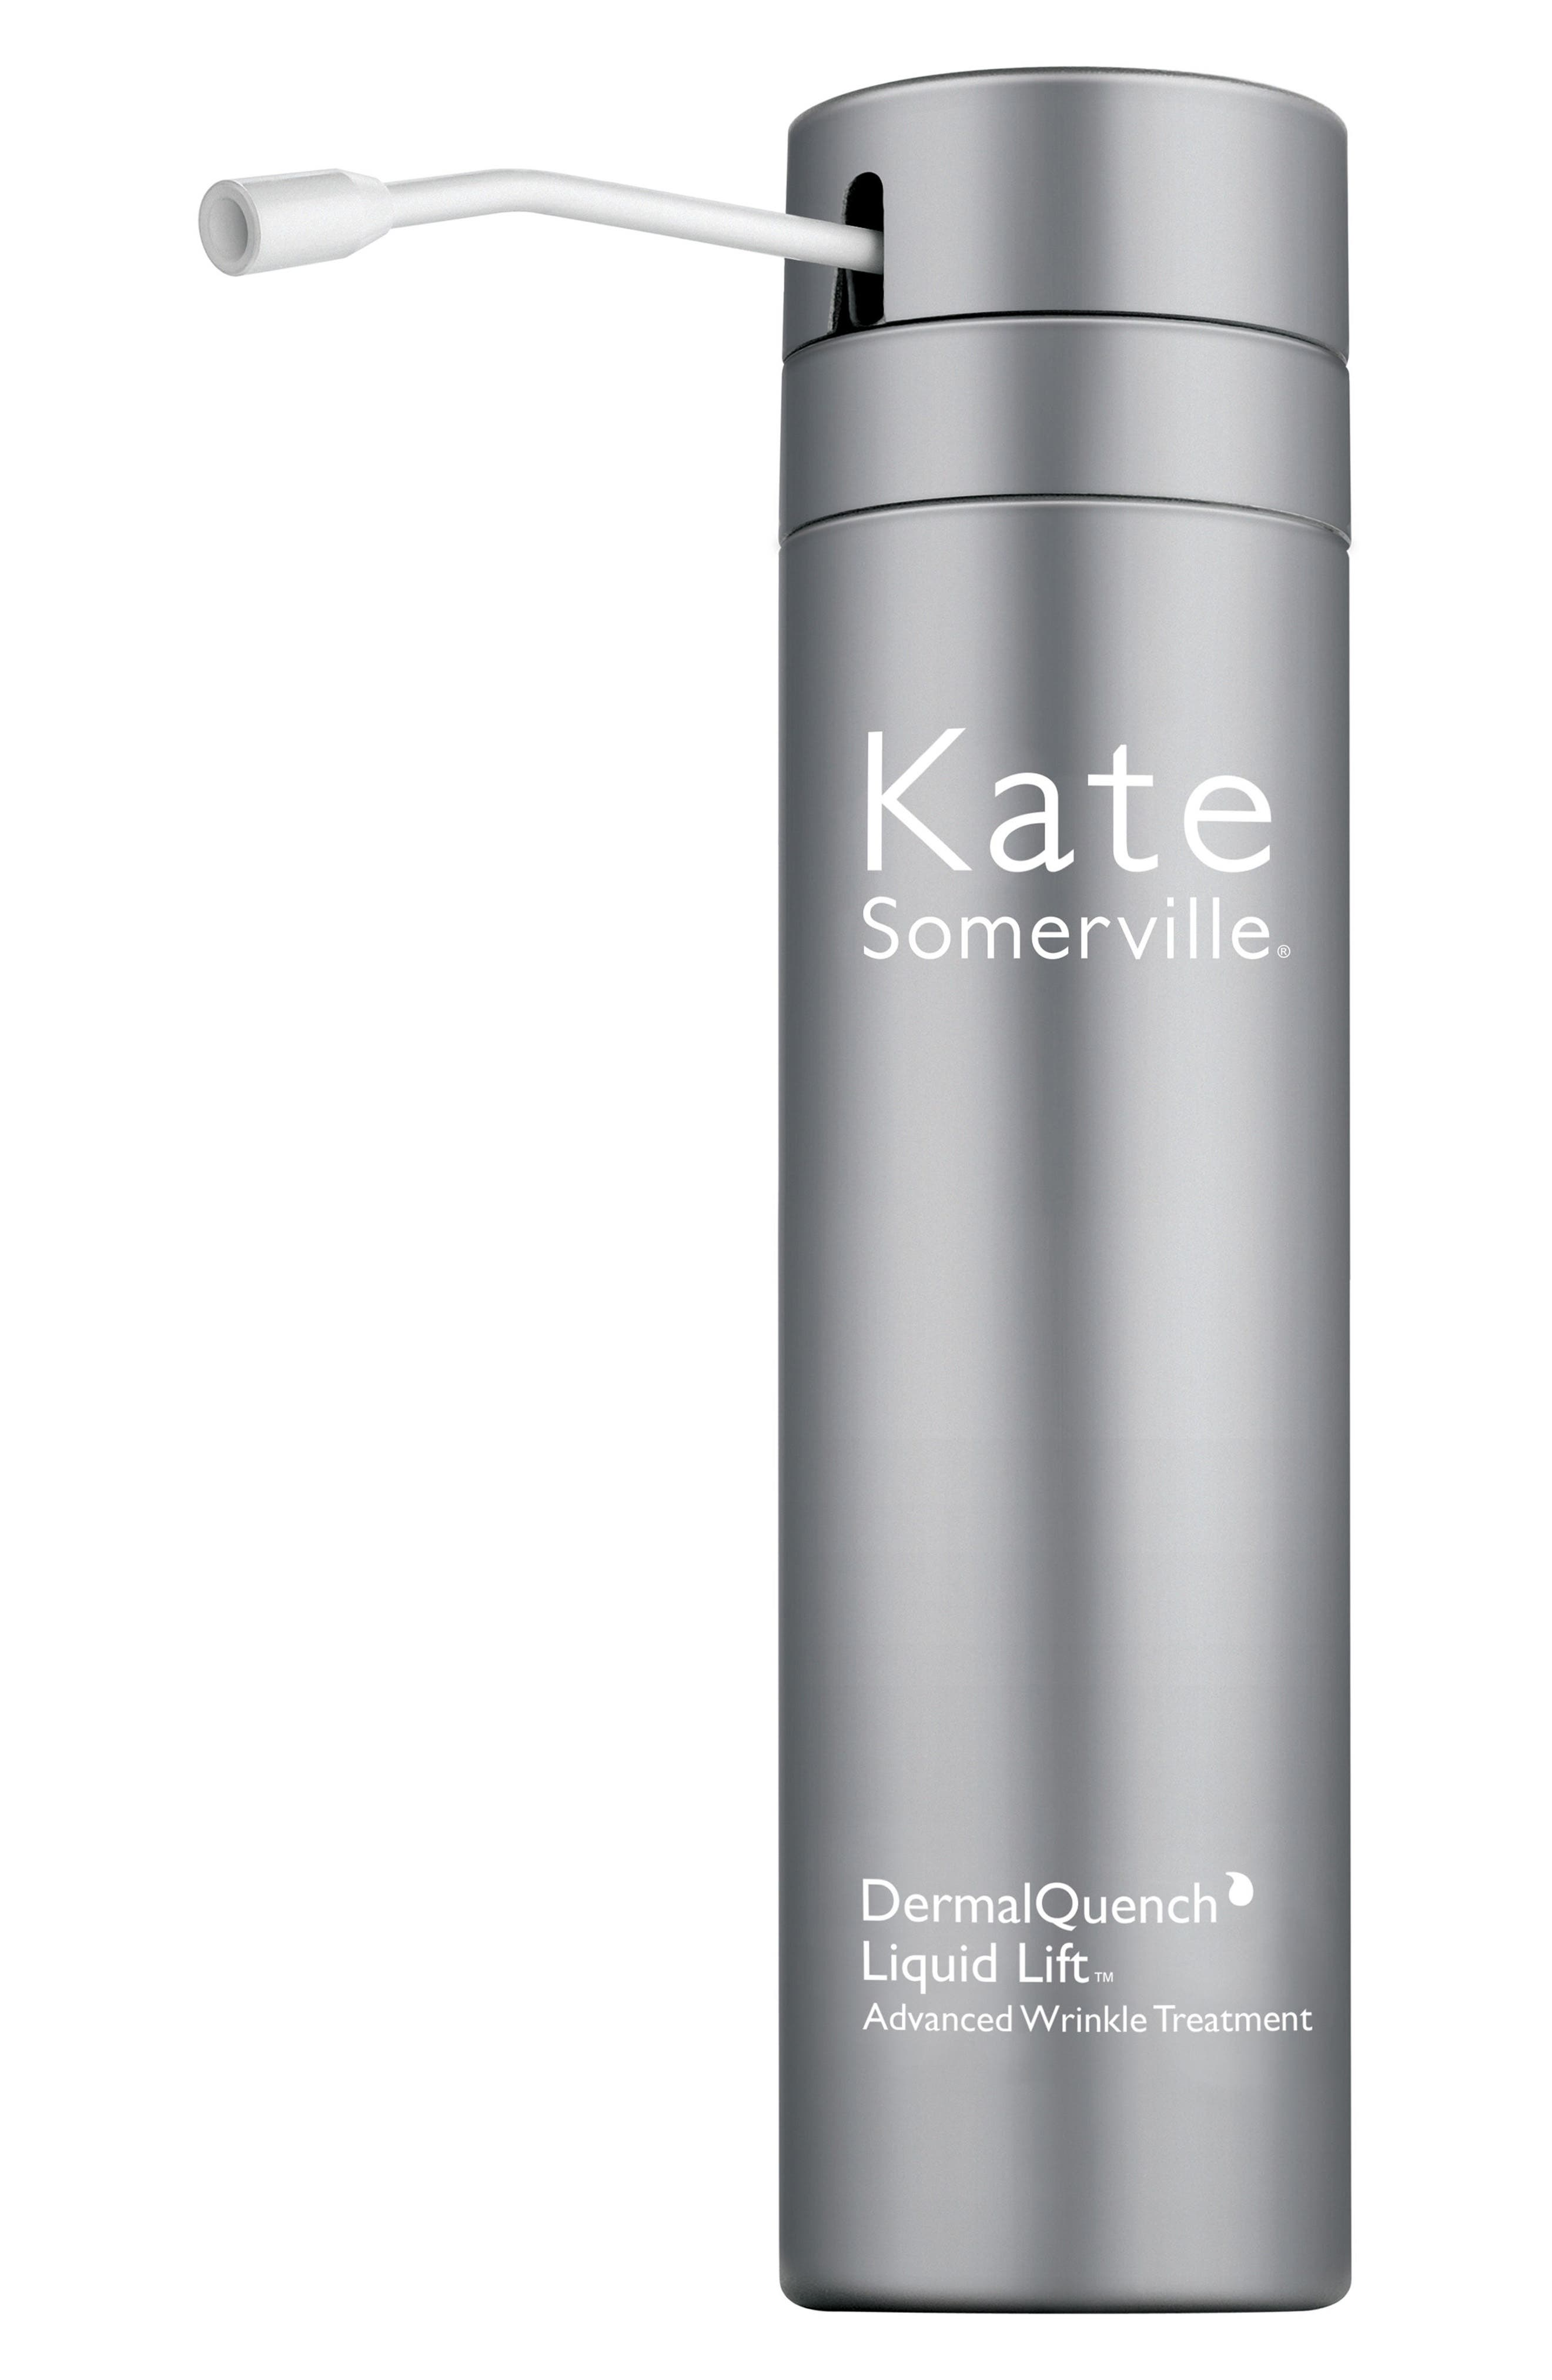 KATE SOMERVILLE® DermalQuench Liquid Lift™ Advanced Wrinkle